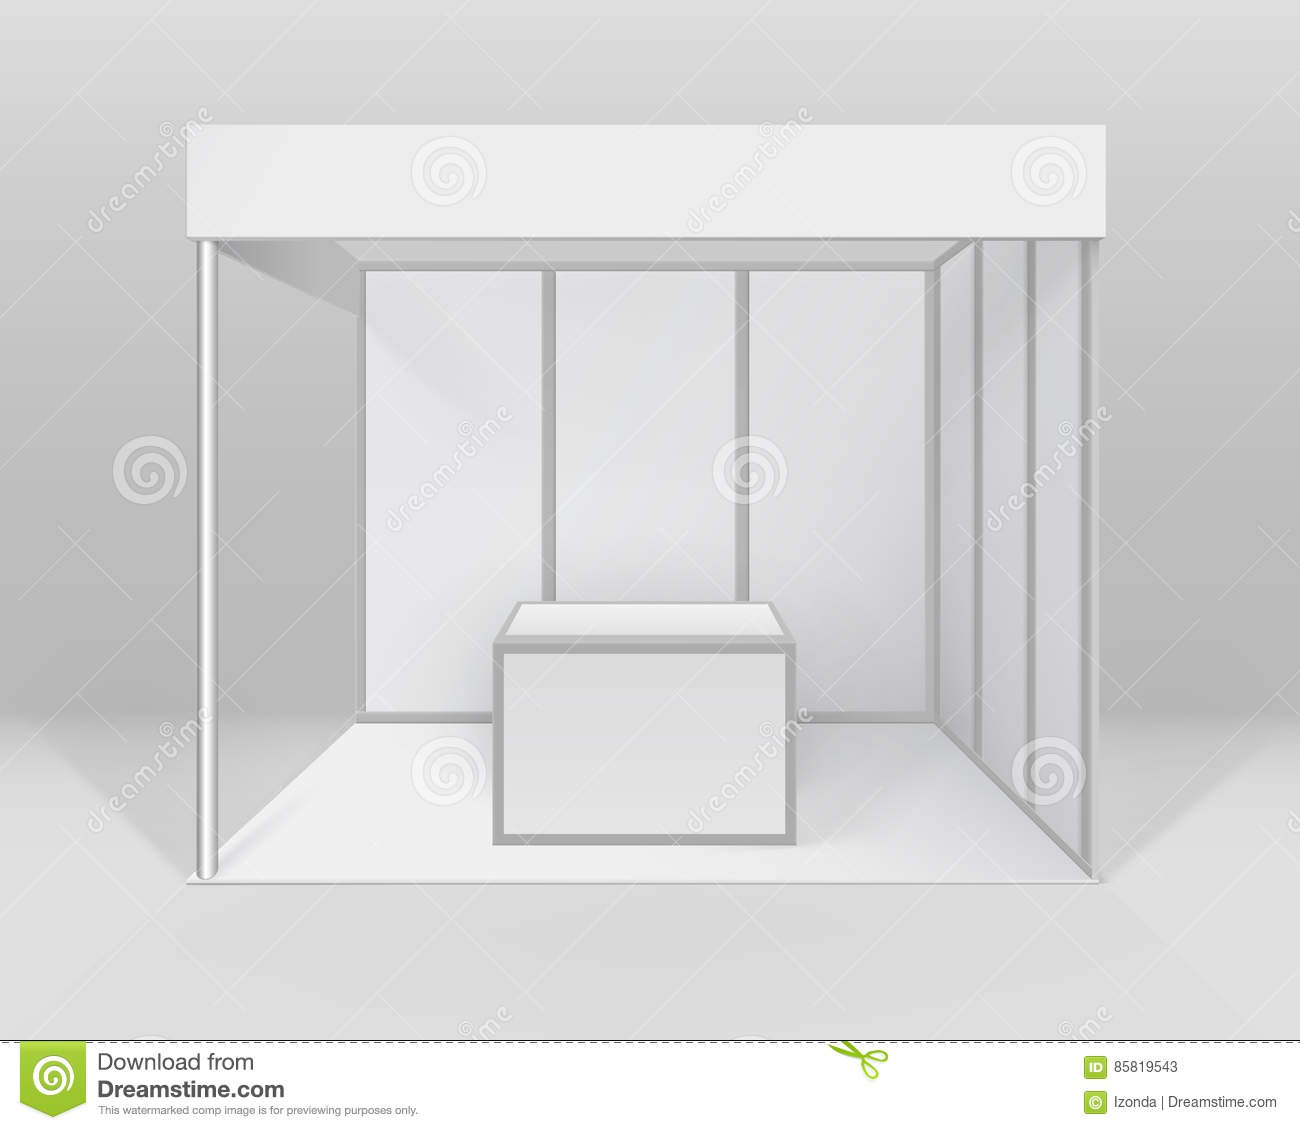 Exhibition Booth Clipart : Blank white trade exhibition stand vector illustration